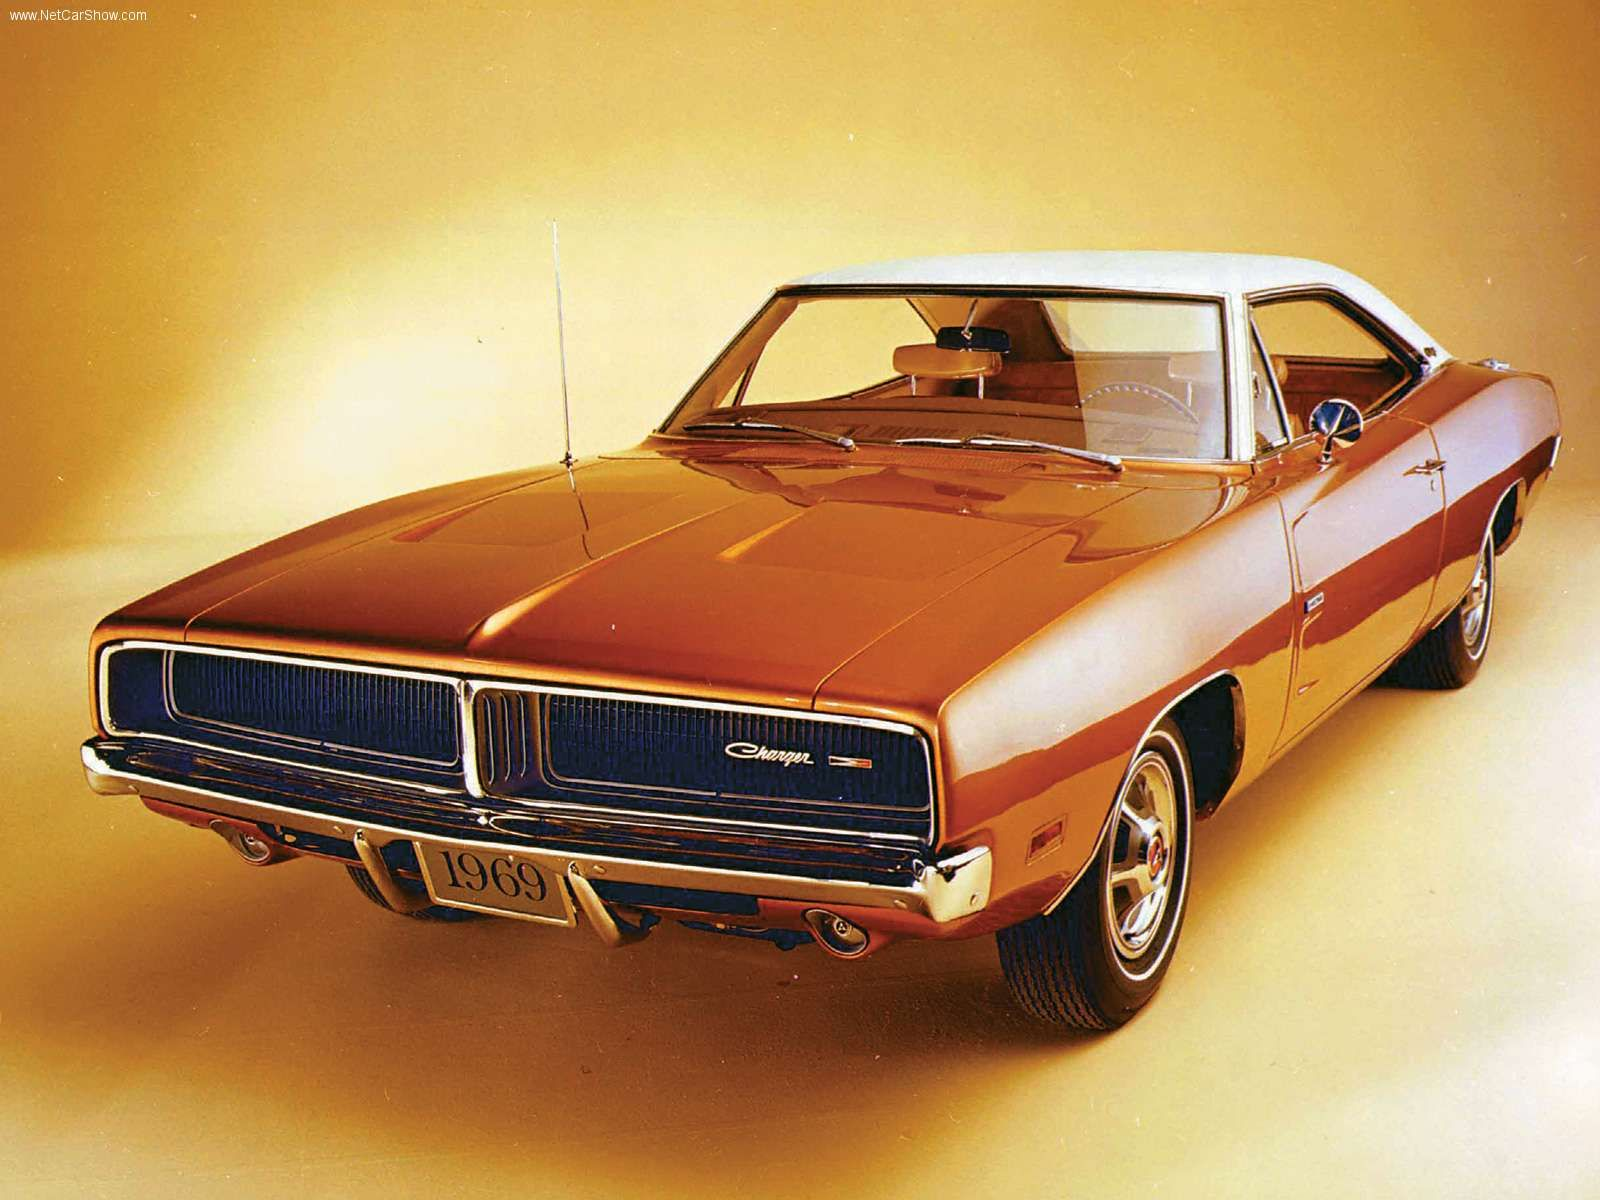 1969 Dodge Charger Featuring New Split Grill Design Dodge Charger